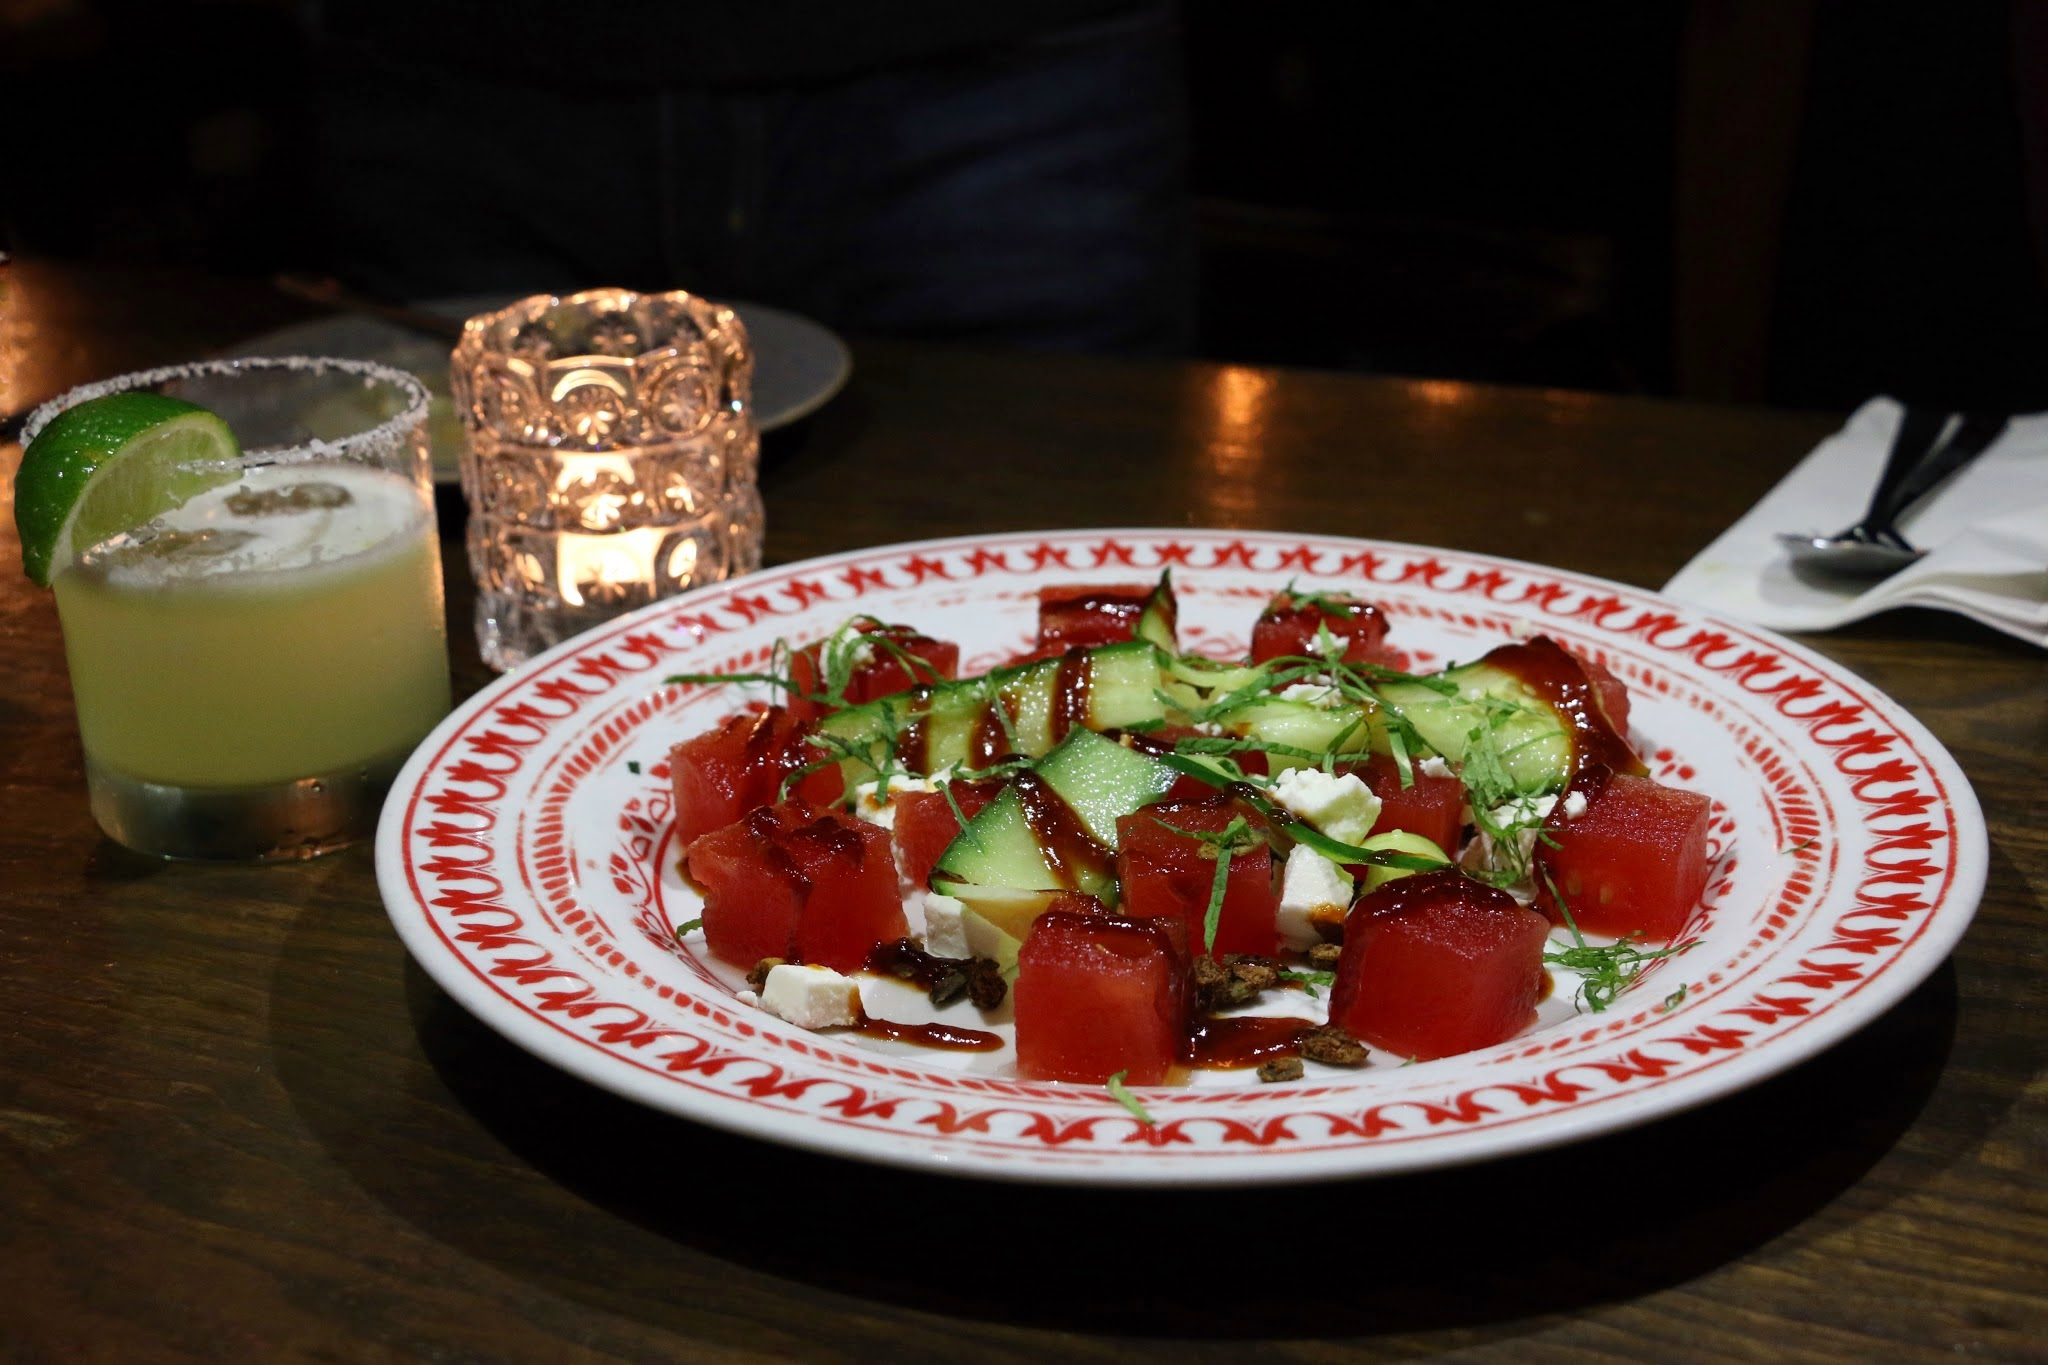 Brickhouse, Watermelon goat feta cheese salad